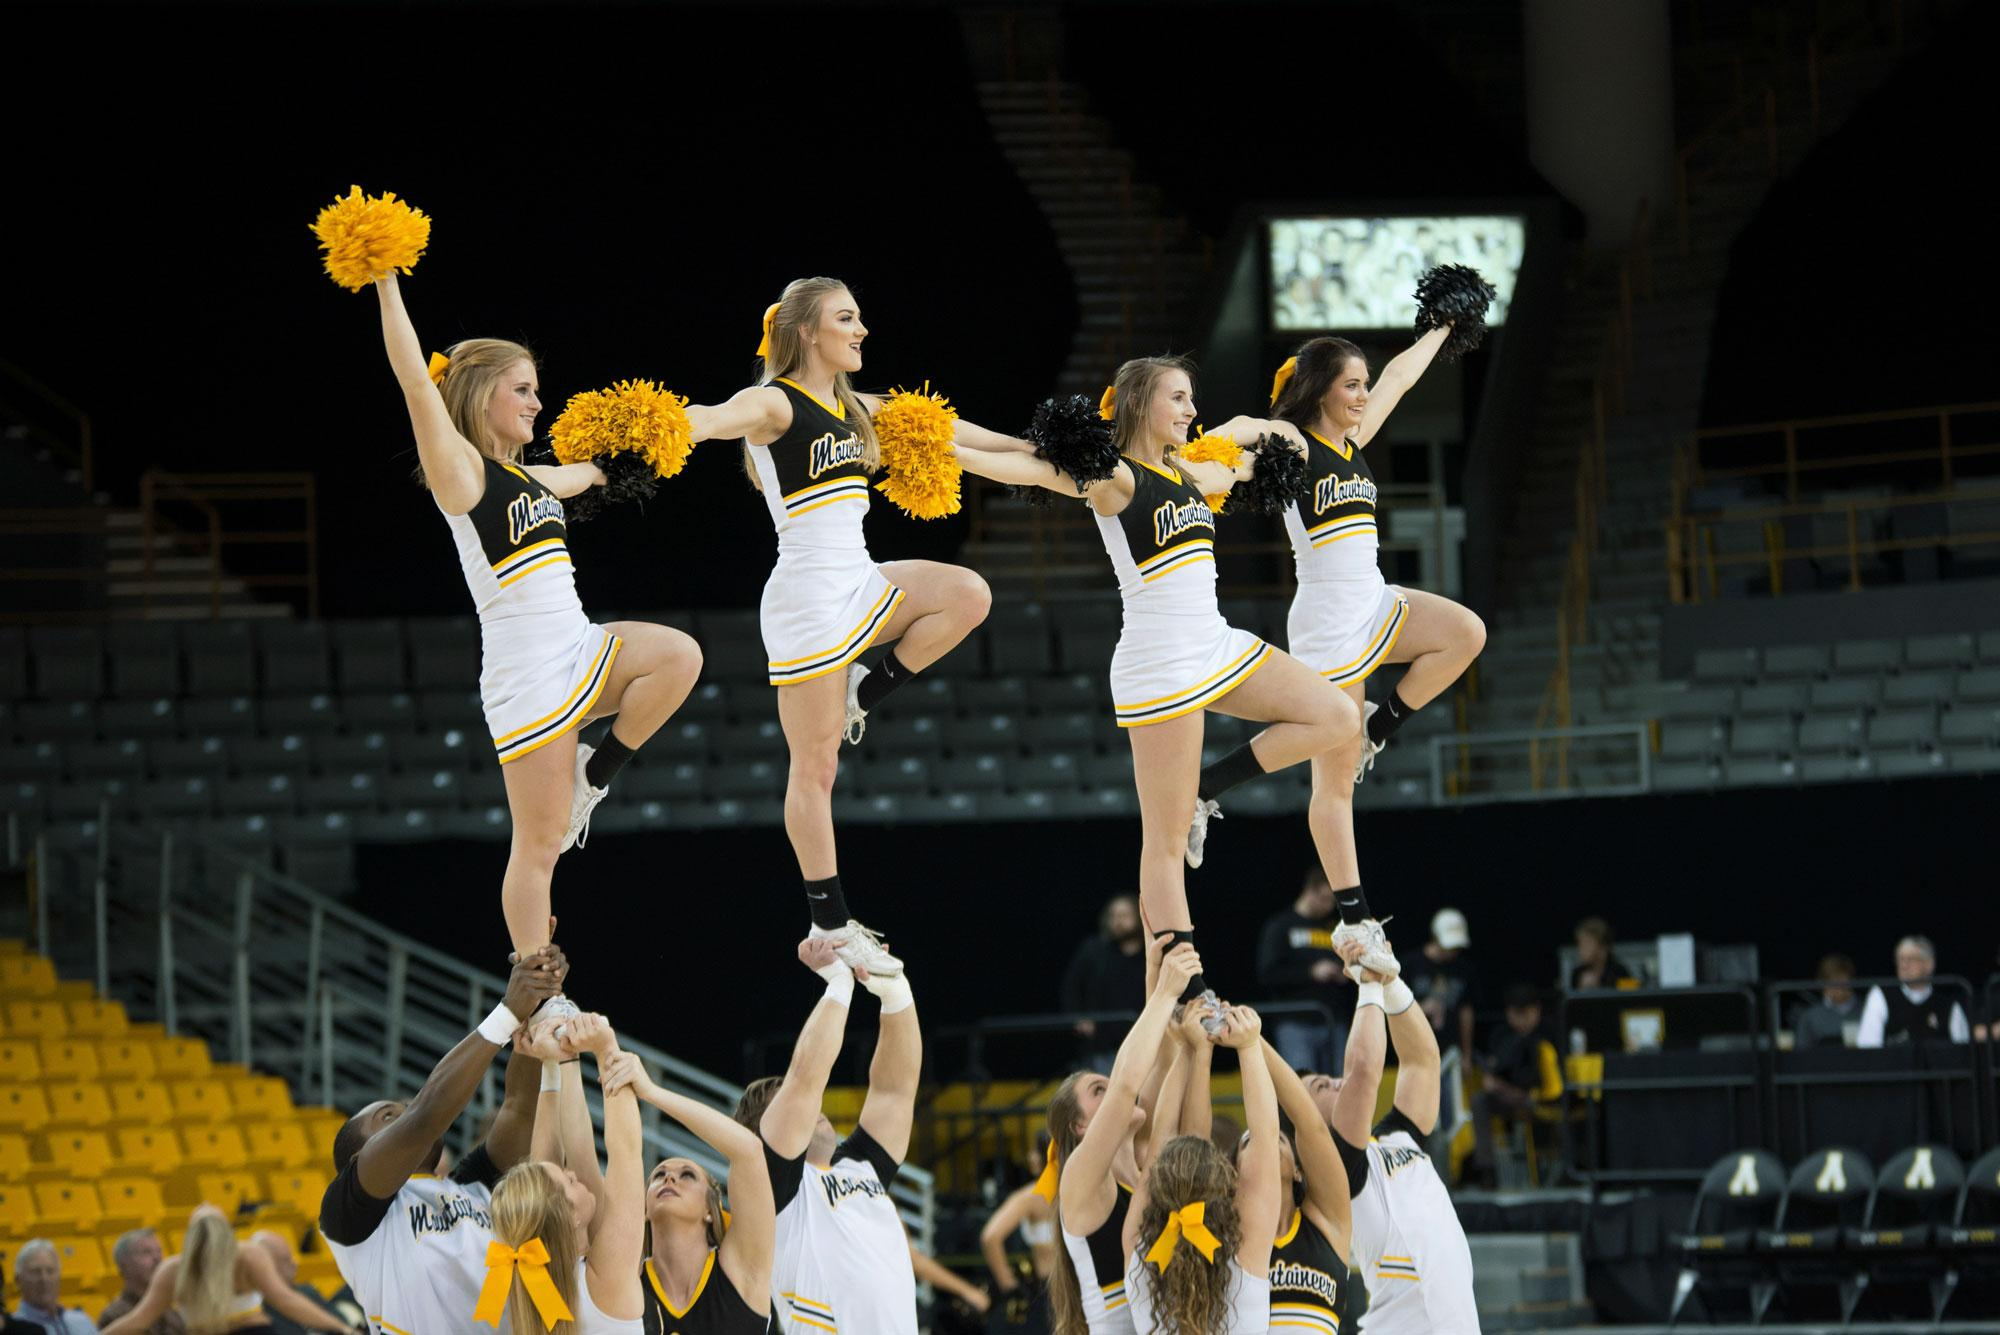 The+App+State+Cheer+squad+opens+up+the+basketball+game+against+UL+Lafayette+with+a+small+routine+to+get+the+crowd+pumped.